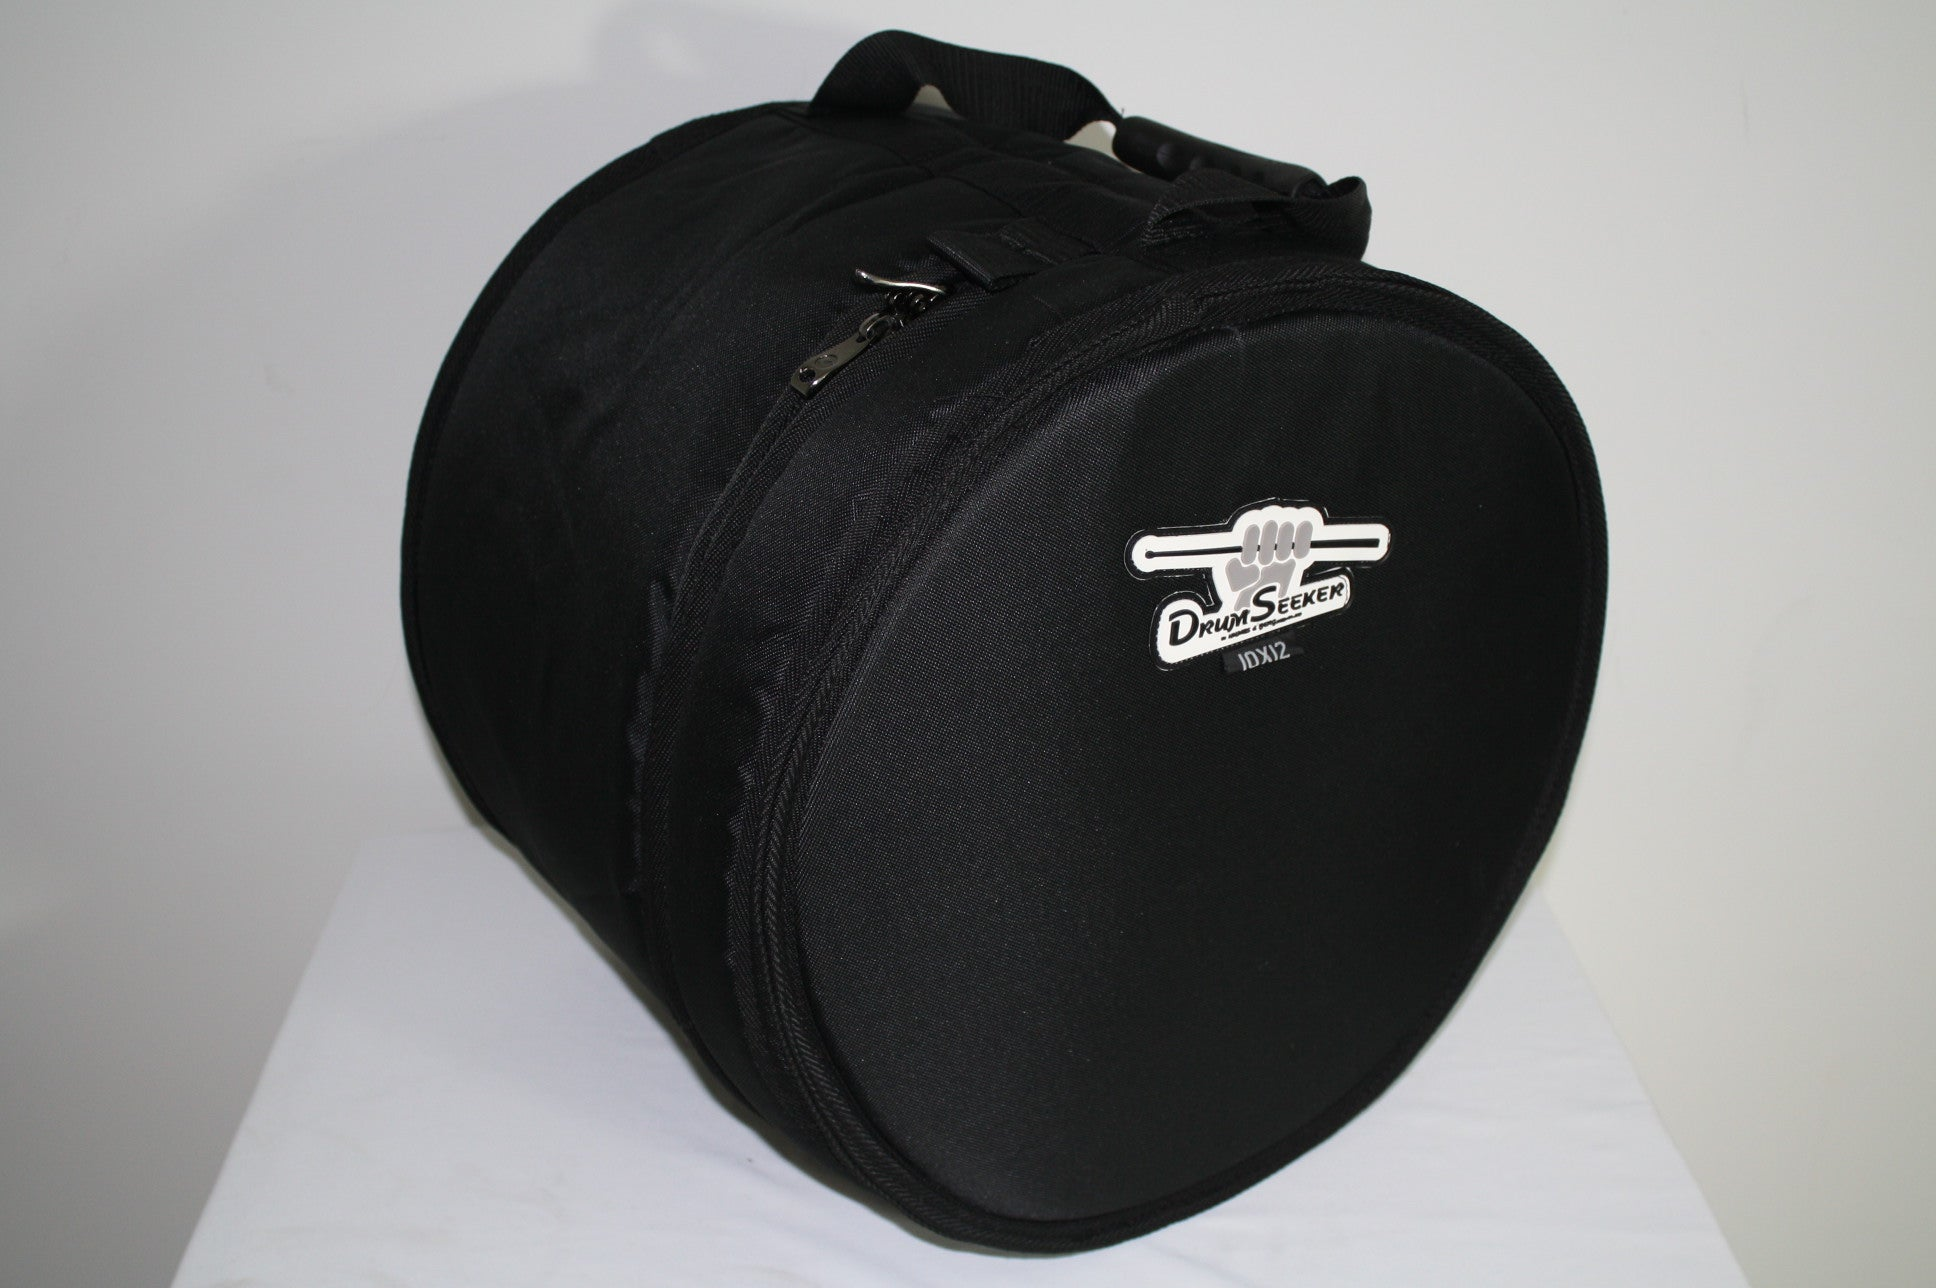 H&B  Drum Seeker 14 x 18 Inches Floor Tom Drum Bag